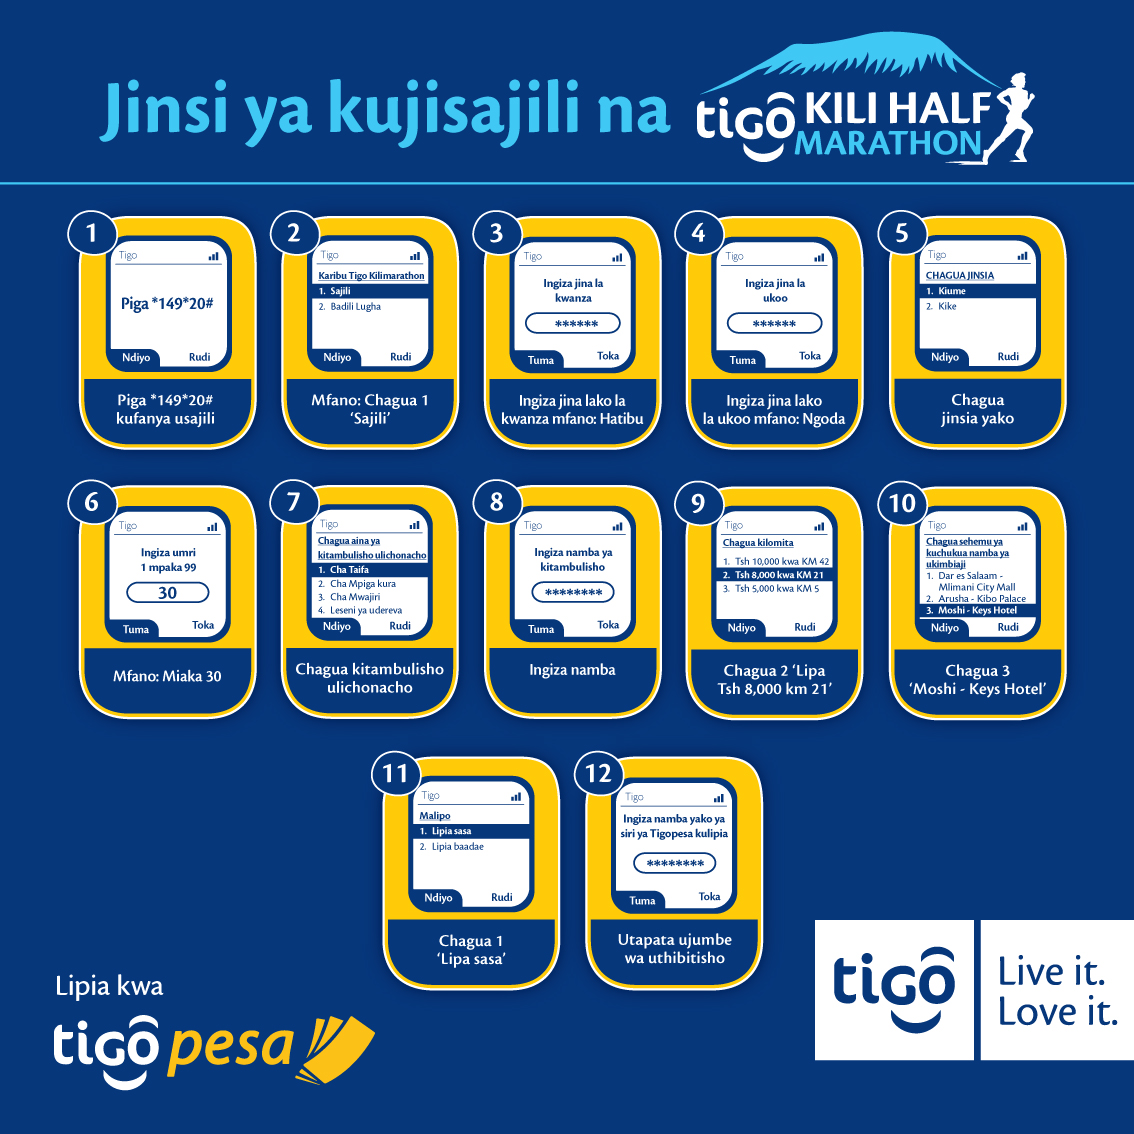 How-to-Tickets_KiliHalfMarathon